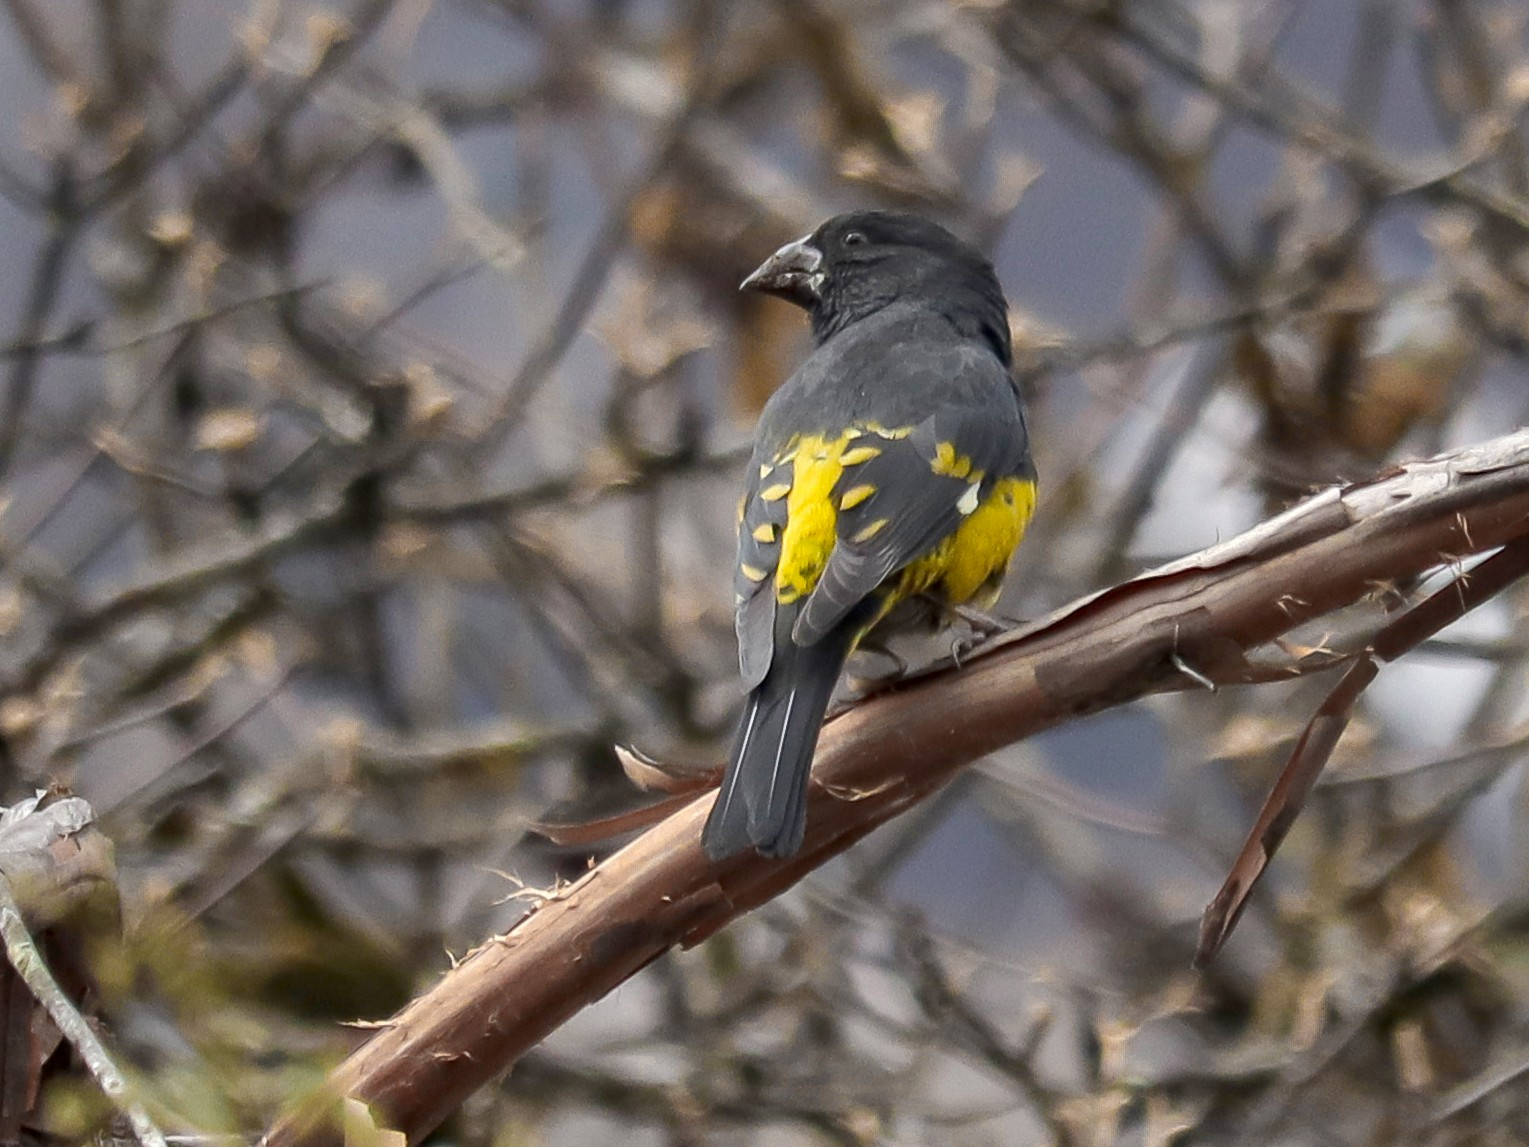 White-winged Grosbeak - Sibasish Sahoo